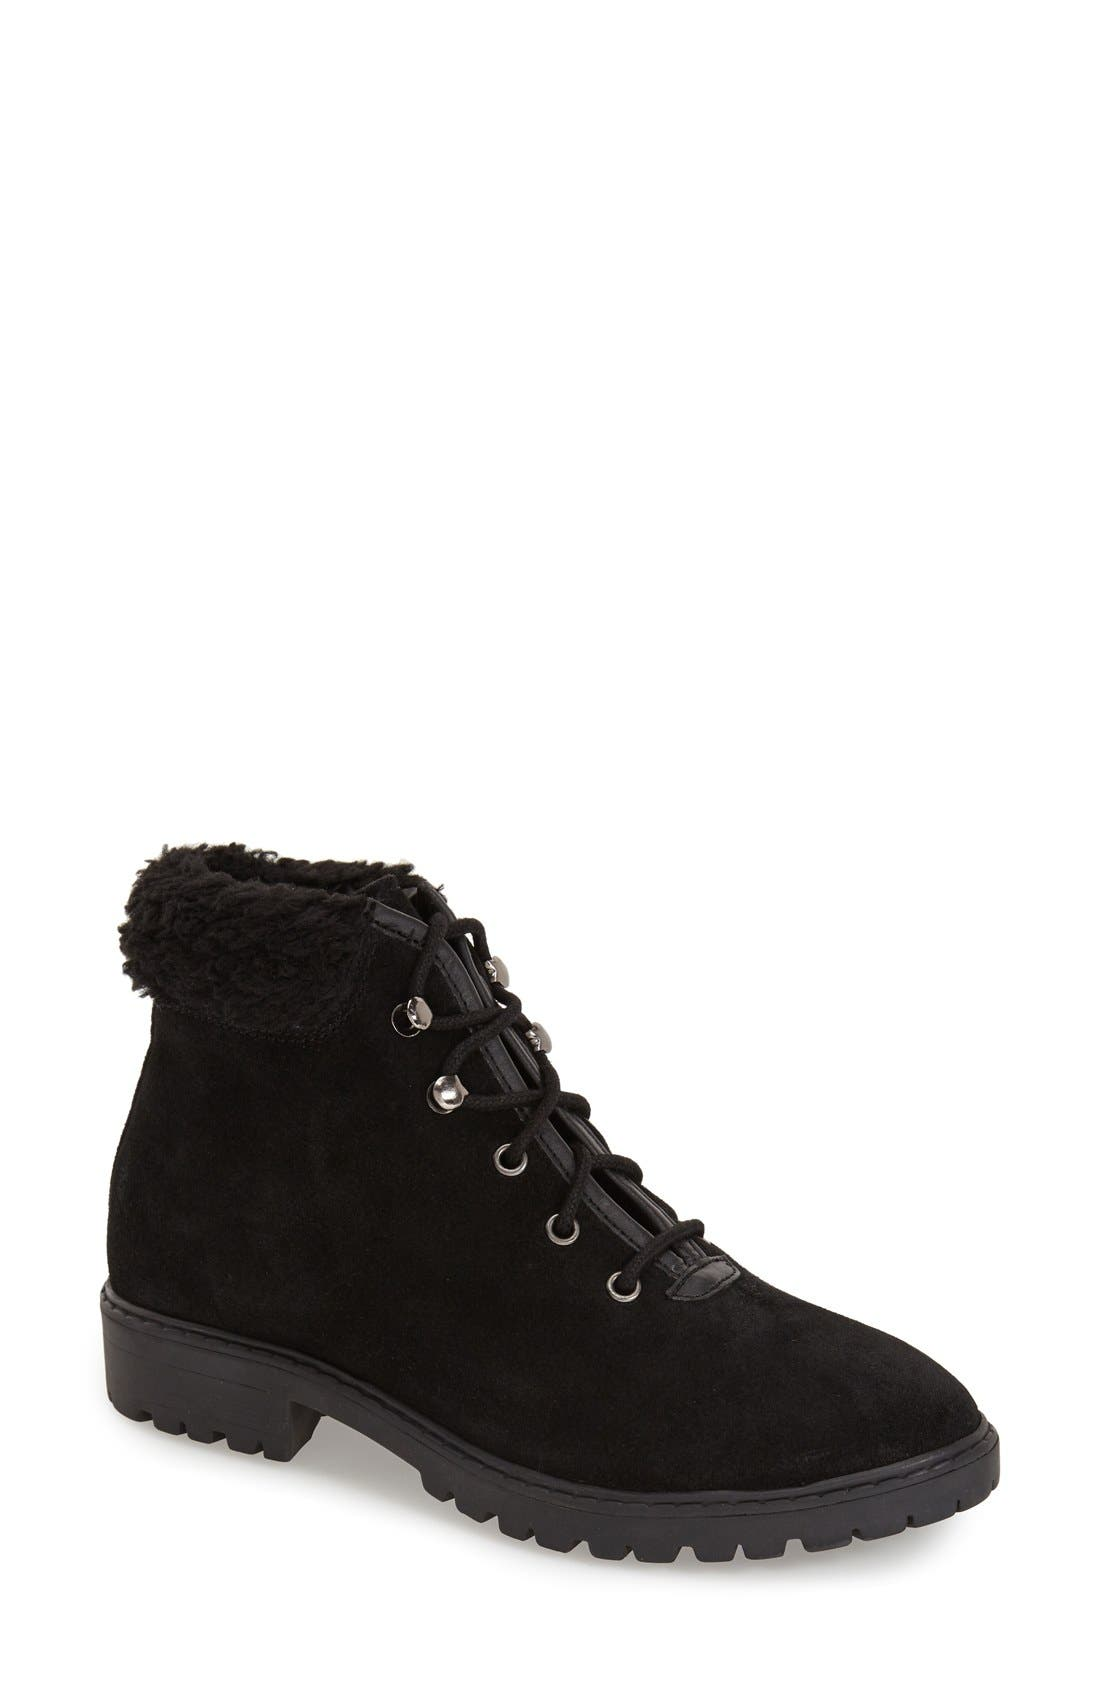 Main Image - Topshop 'Birdy' Lace-Up Boot (Women)